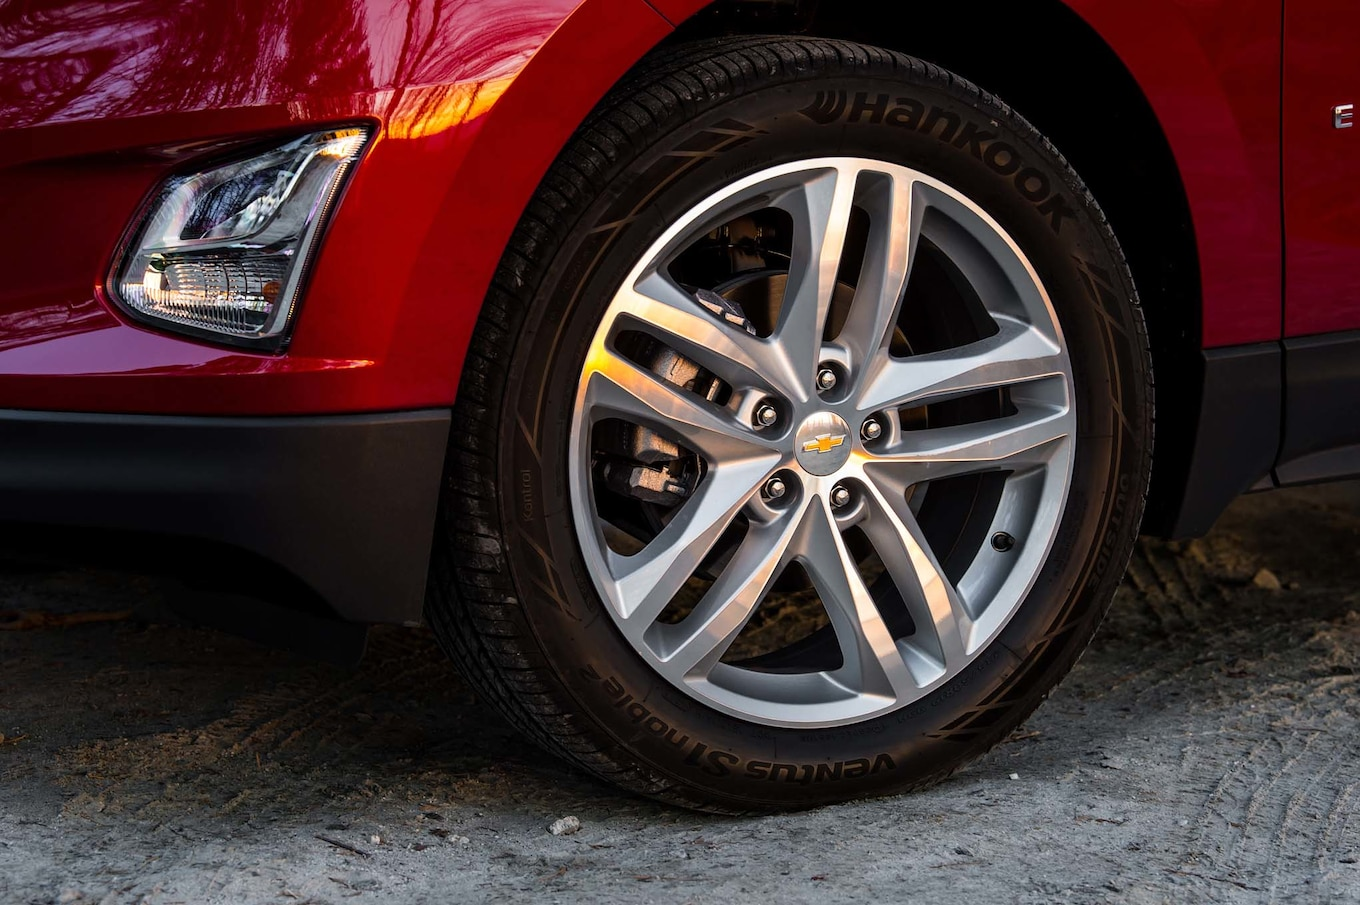 2018 Chevrolet Equinox Wheel Wallpaper (11)